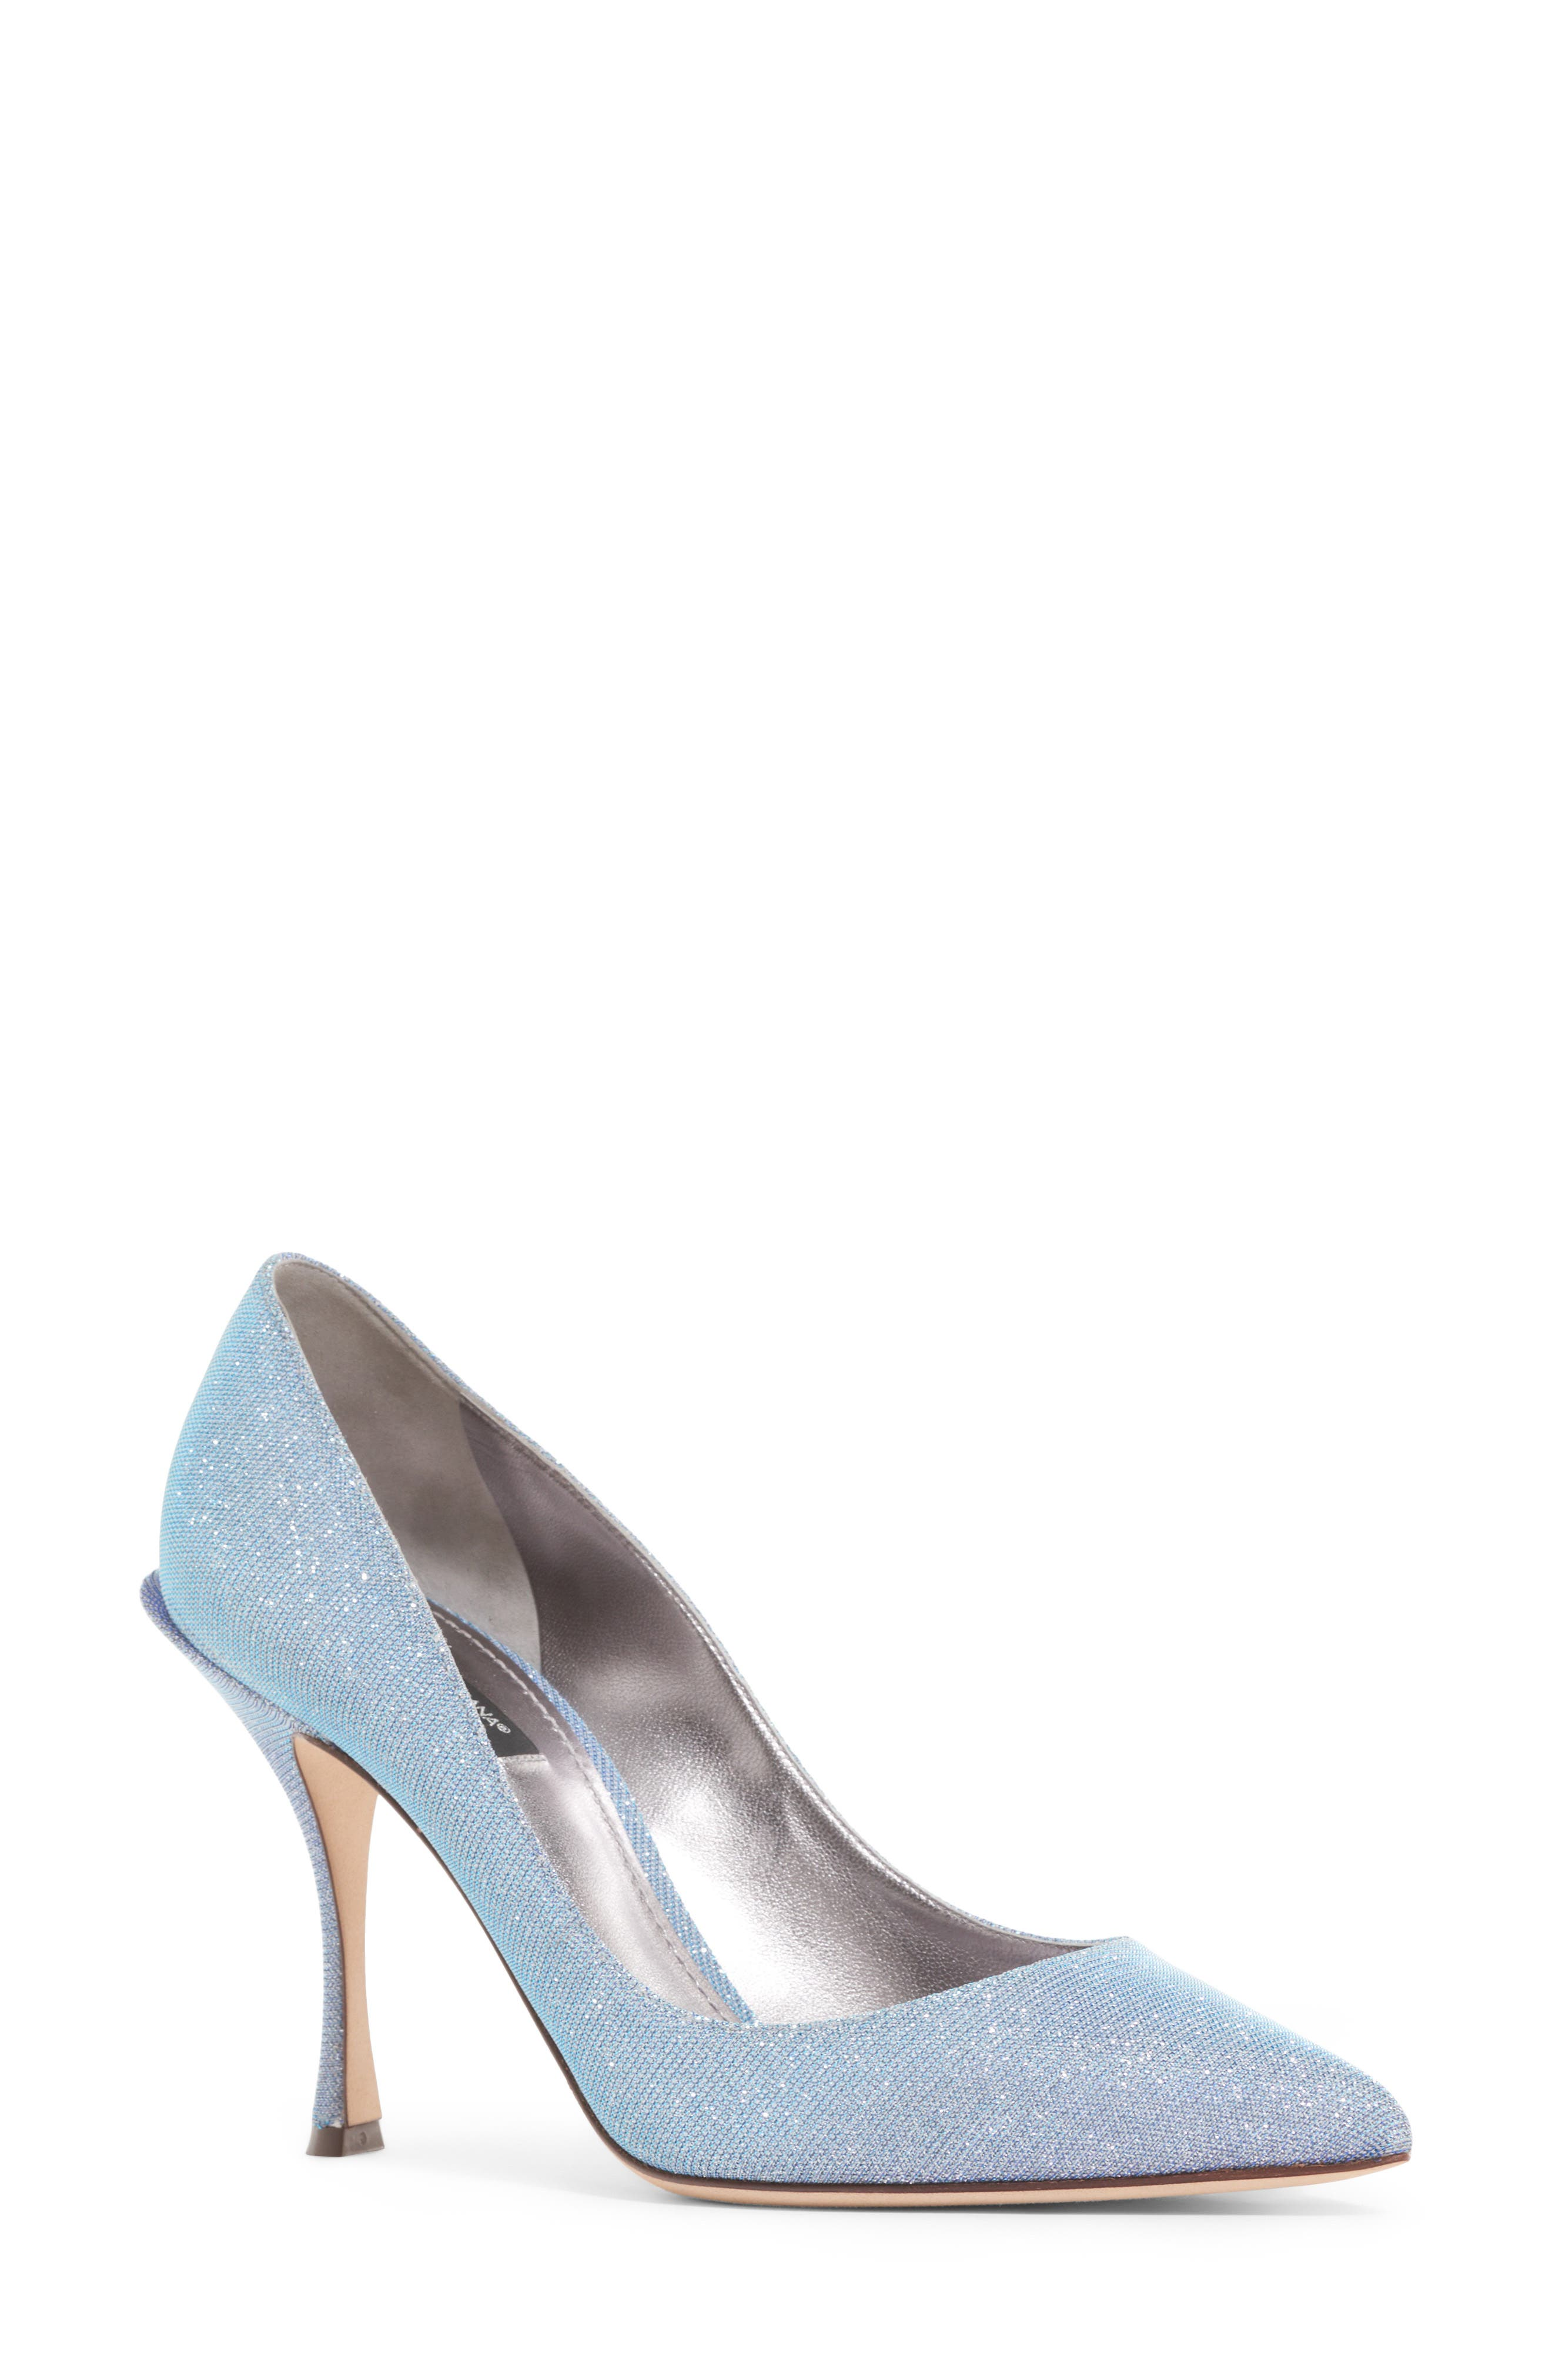 Dolce&Gabbana Metallic Pointy Toe Pump (Women)